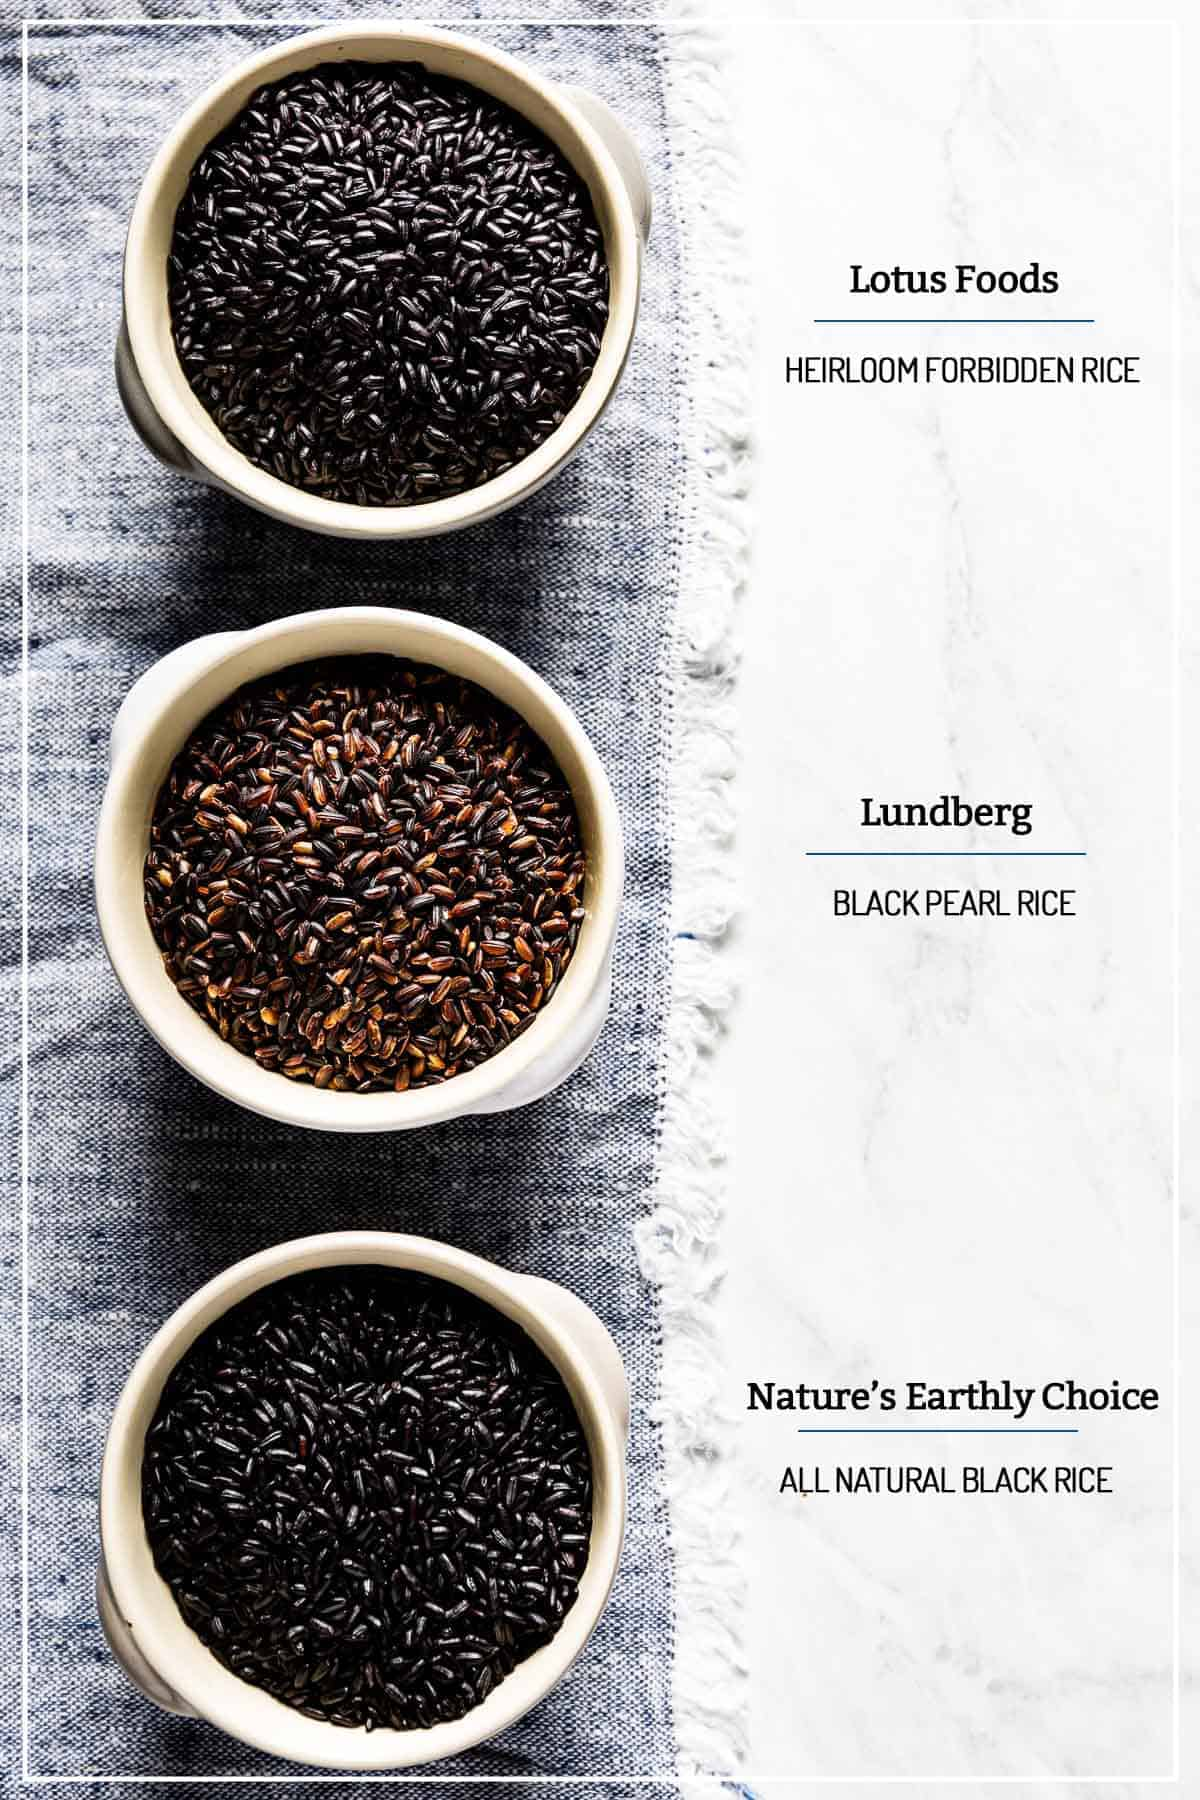 A bowl of forbidden rice, black pearl rice, and natural black rice